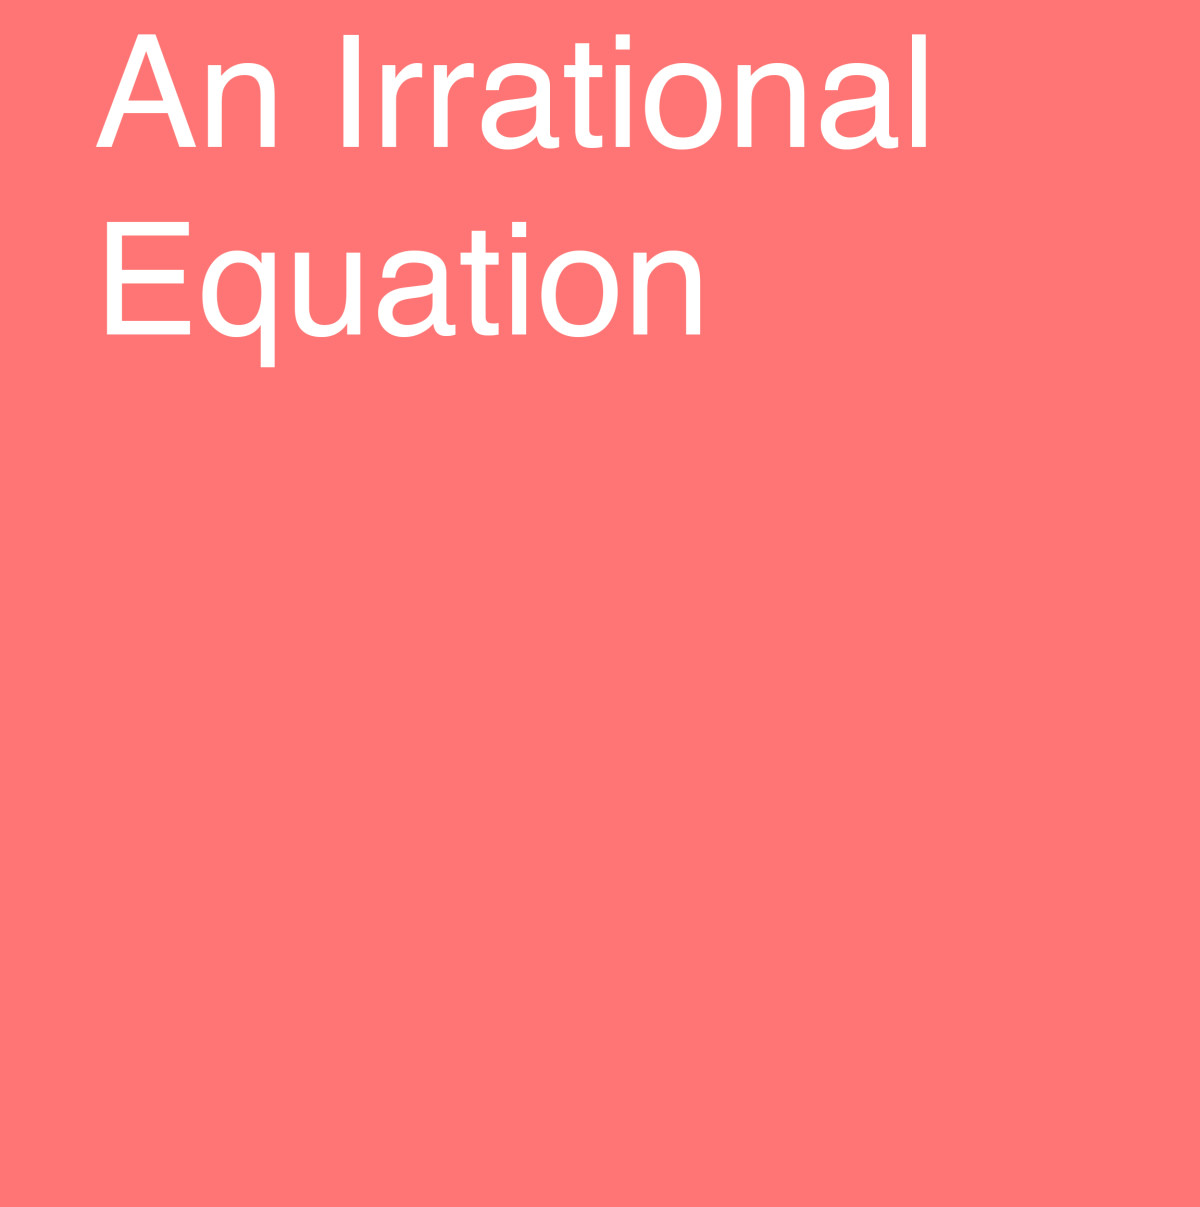 An Irrational Equation